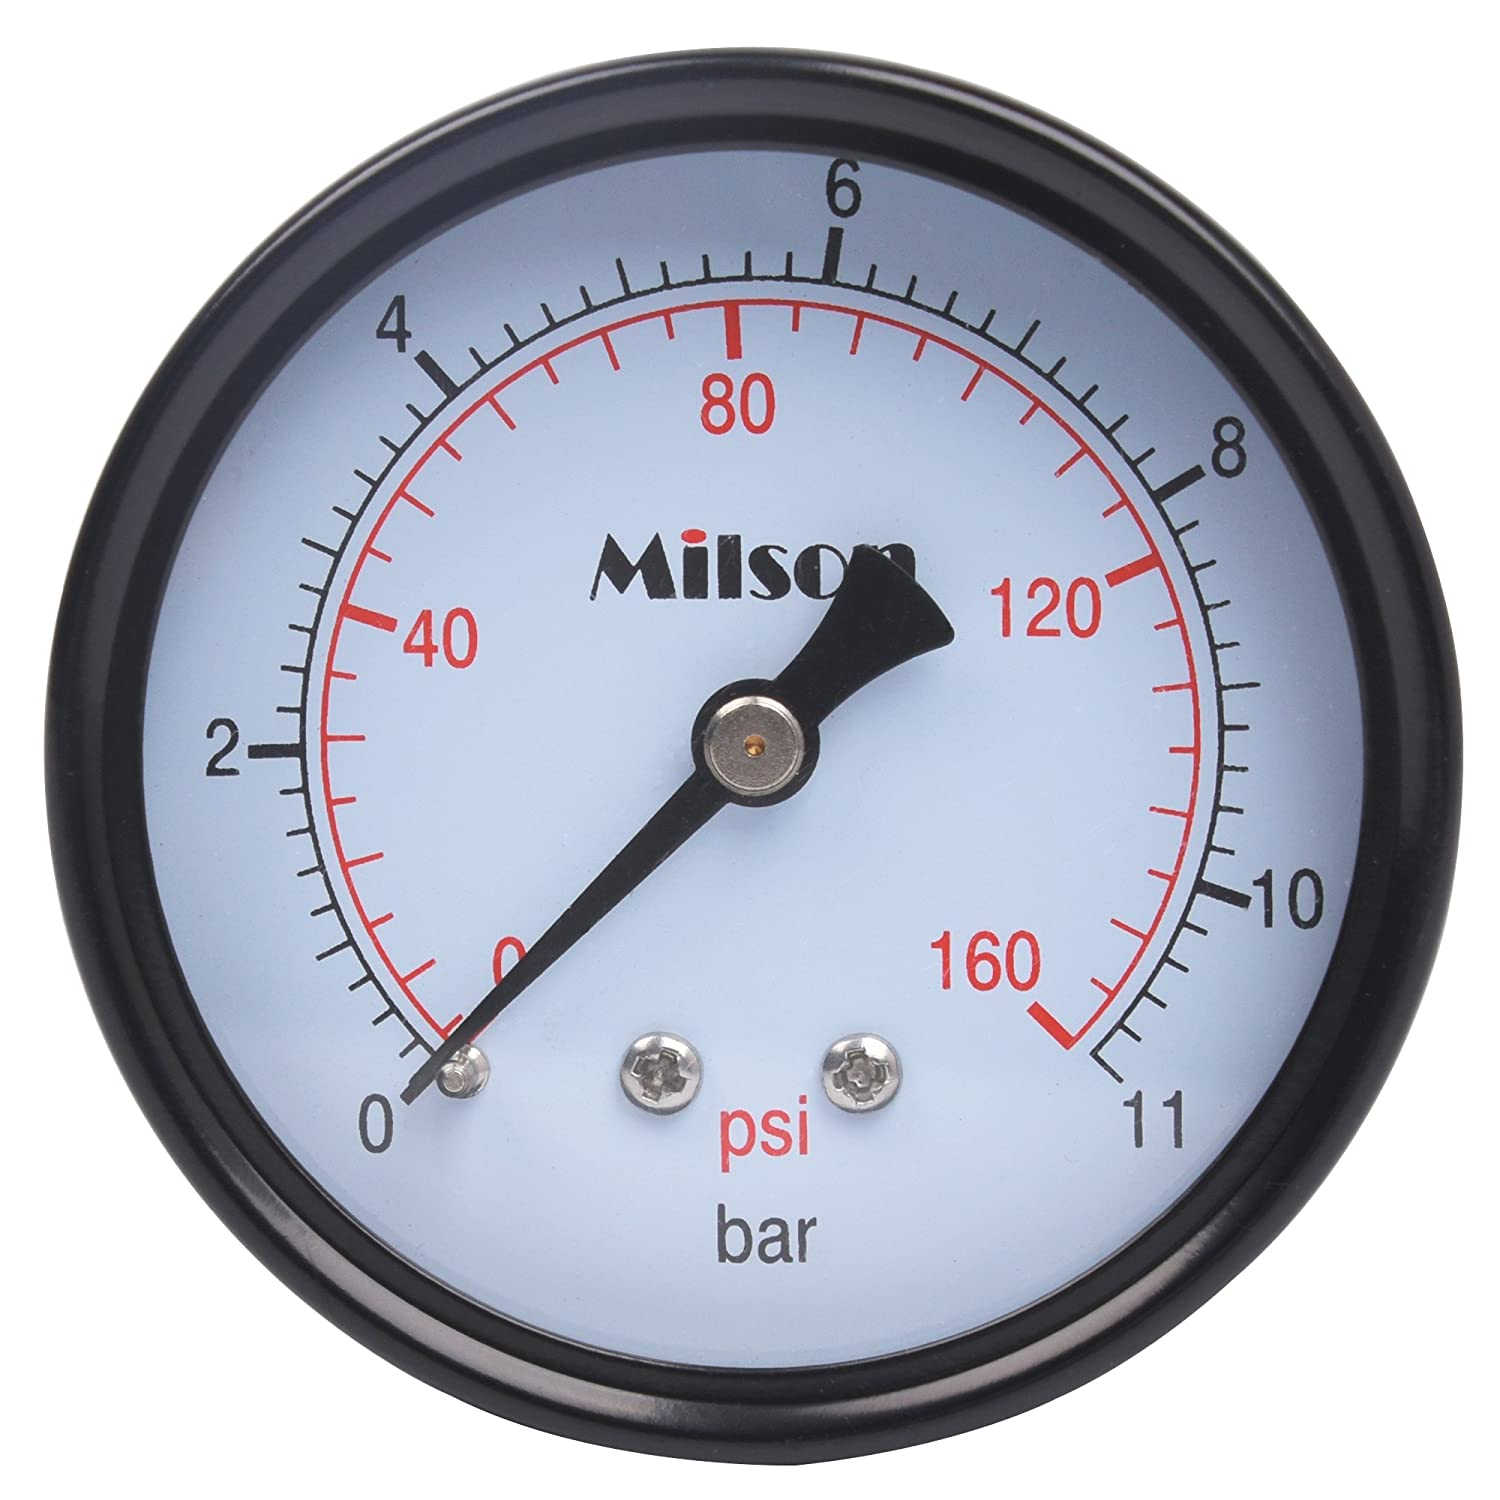 Milson Pressure Gauge 2.5 Black Steel Case Back Mount 1 4NPT 0 160 Psi Bar Accuracy 2.0 Brass Internal Multiple Function